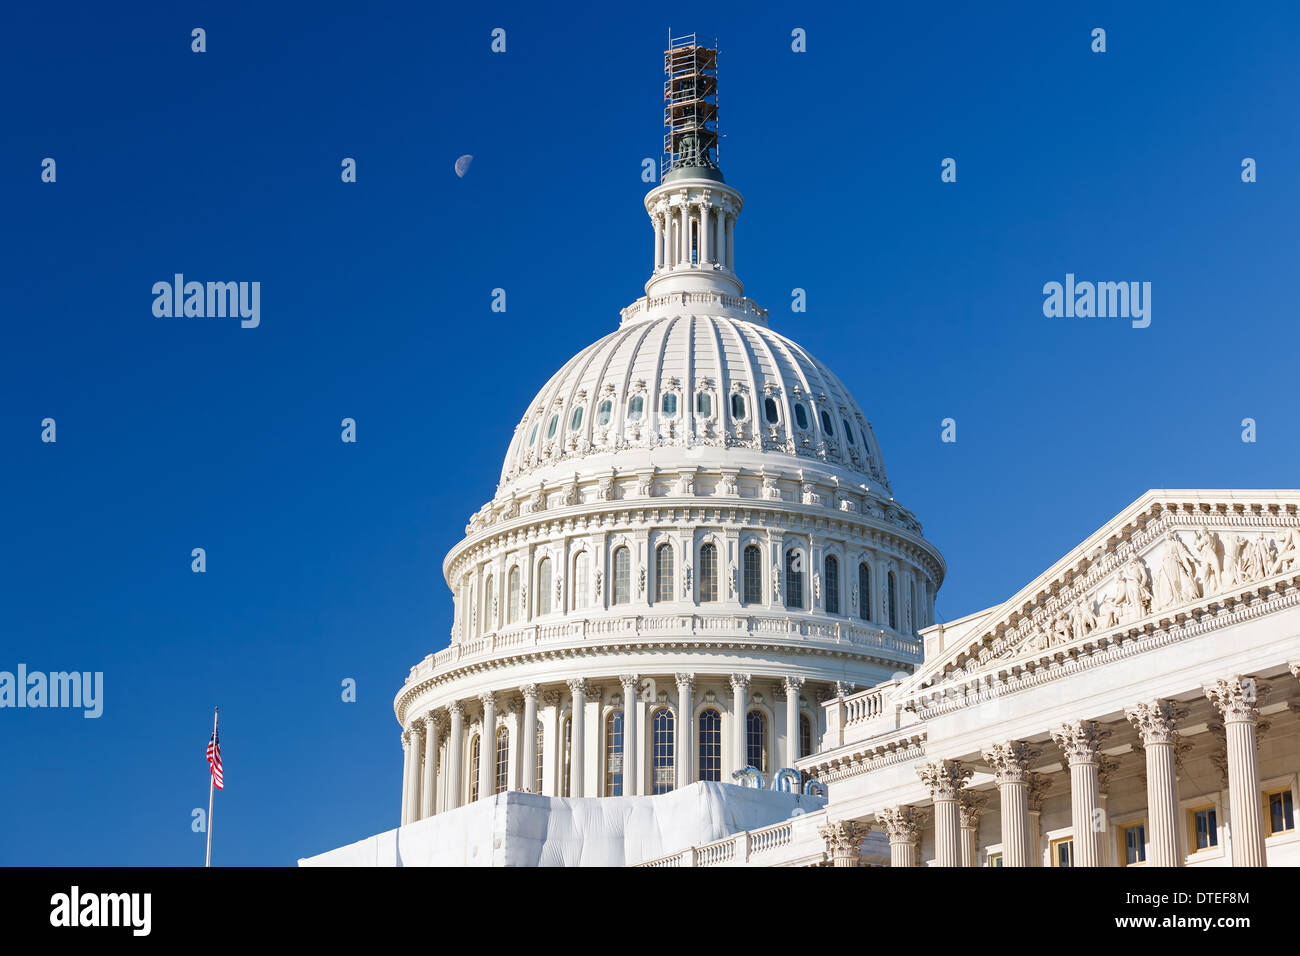 US Capitol, Washington DC - Stock Image